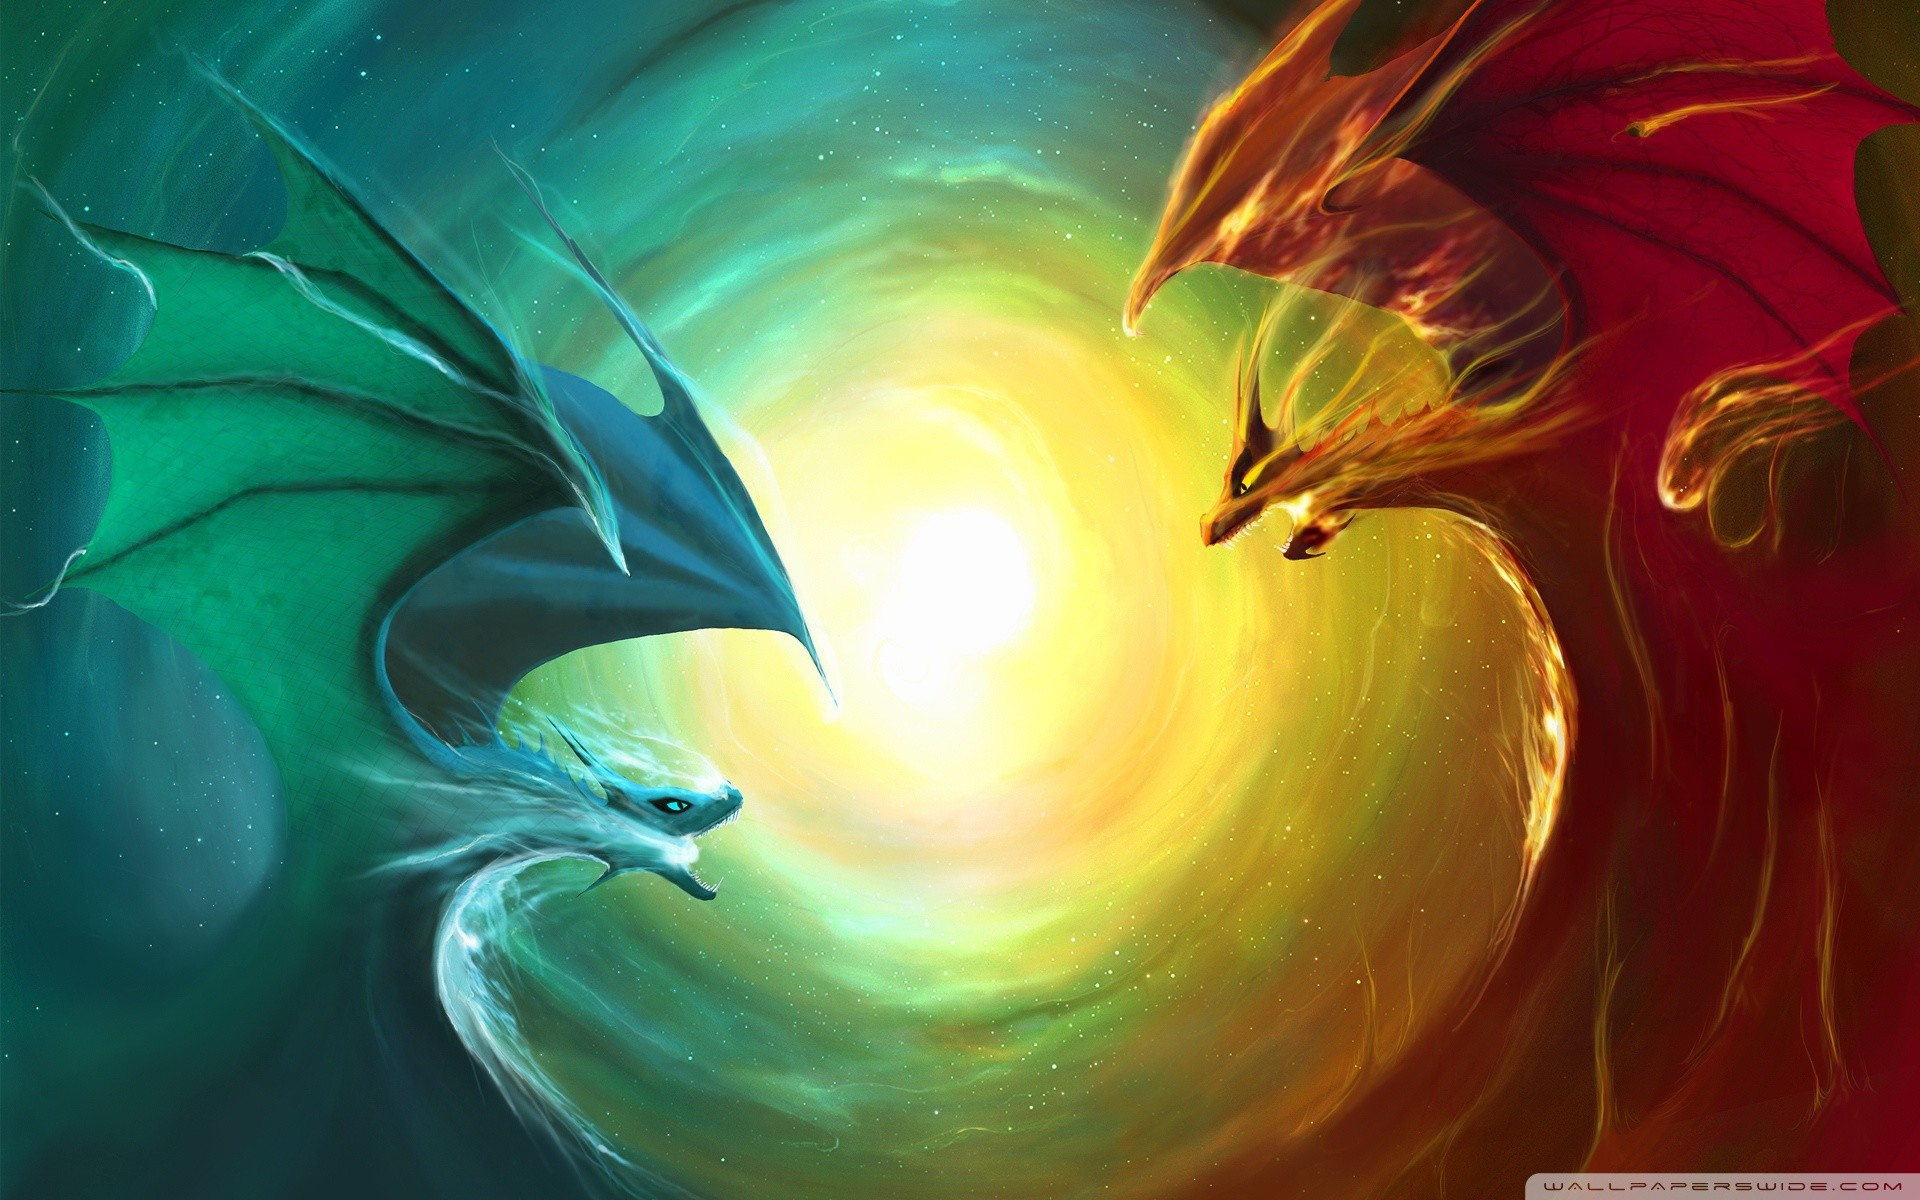 Wallpapers Collection «Dragon Wallpapers» | Wallpapers 4k | Pinterest |  Dragons, Wallpaper and Samurai